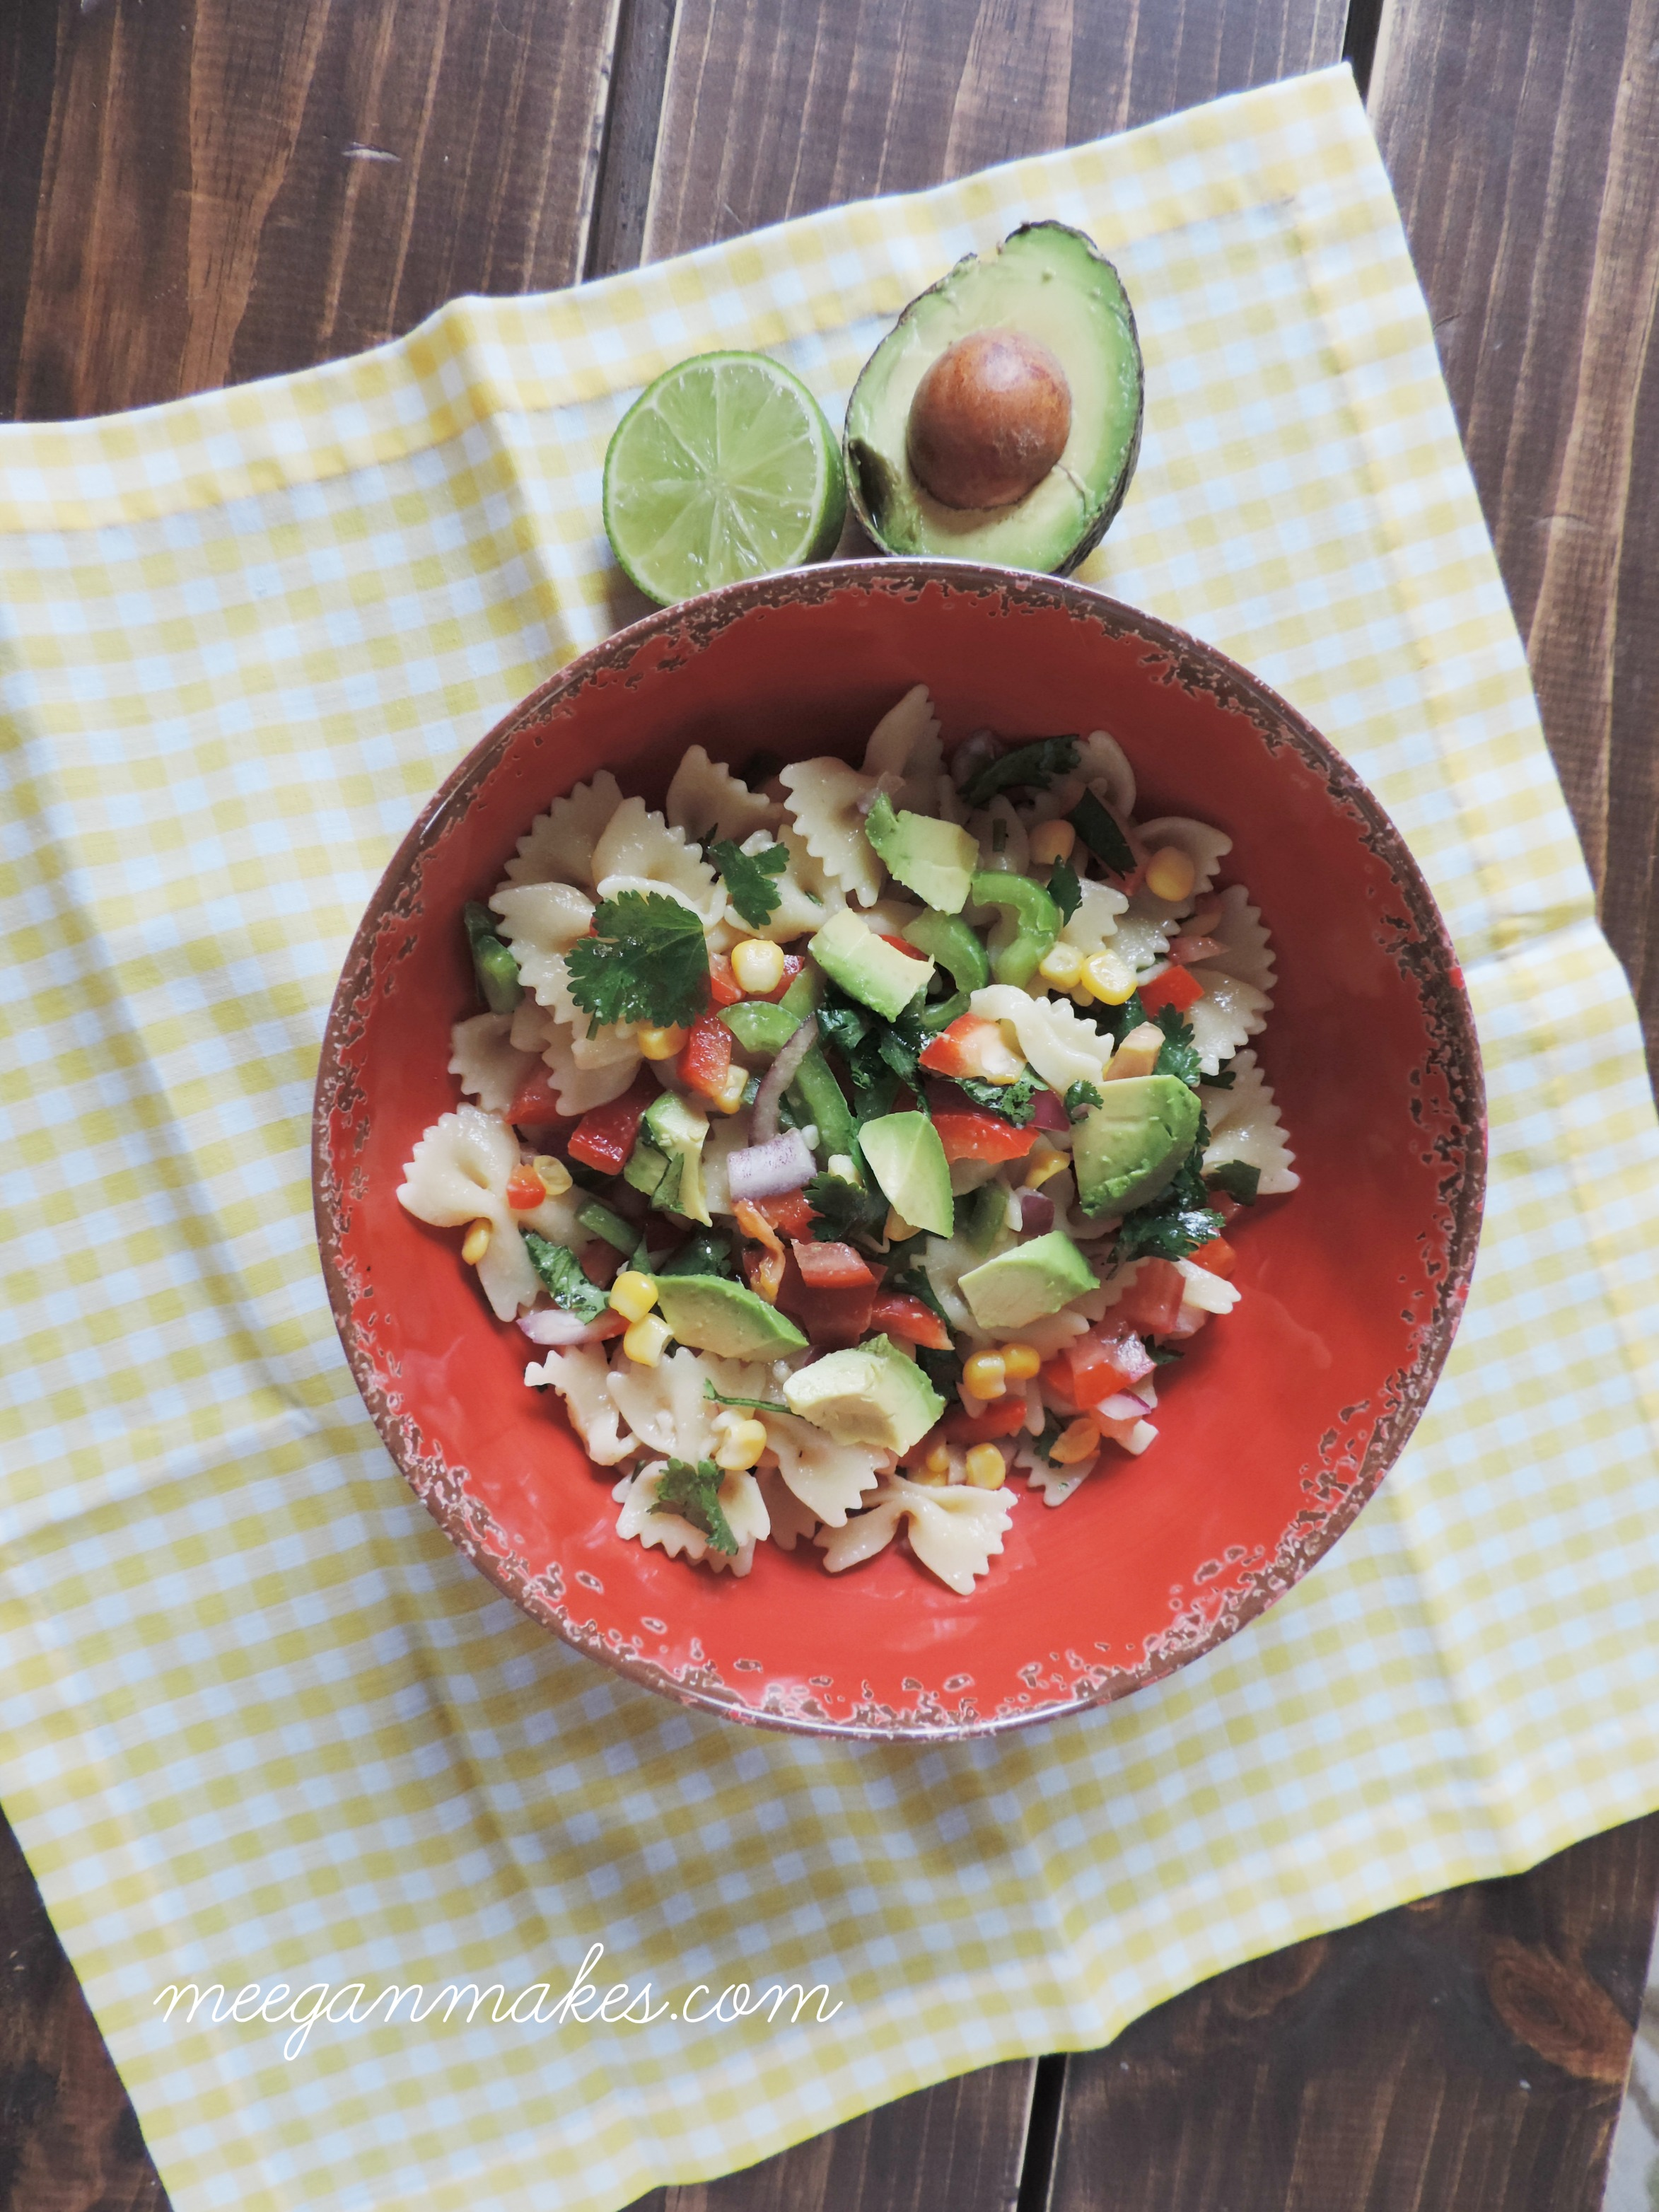 Bow Tie Salad with Avocado, Corn and Peppers